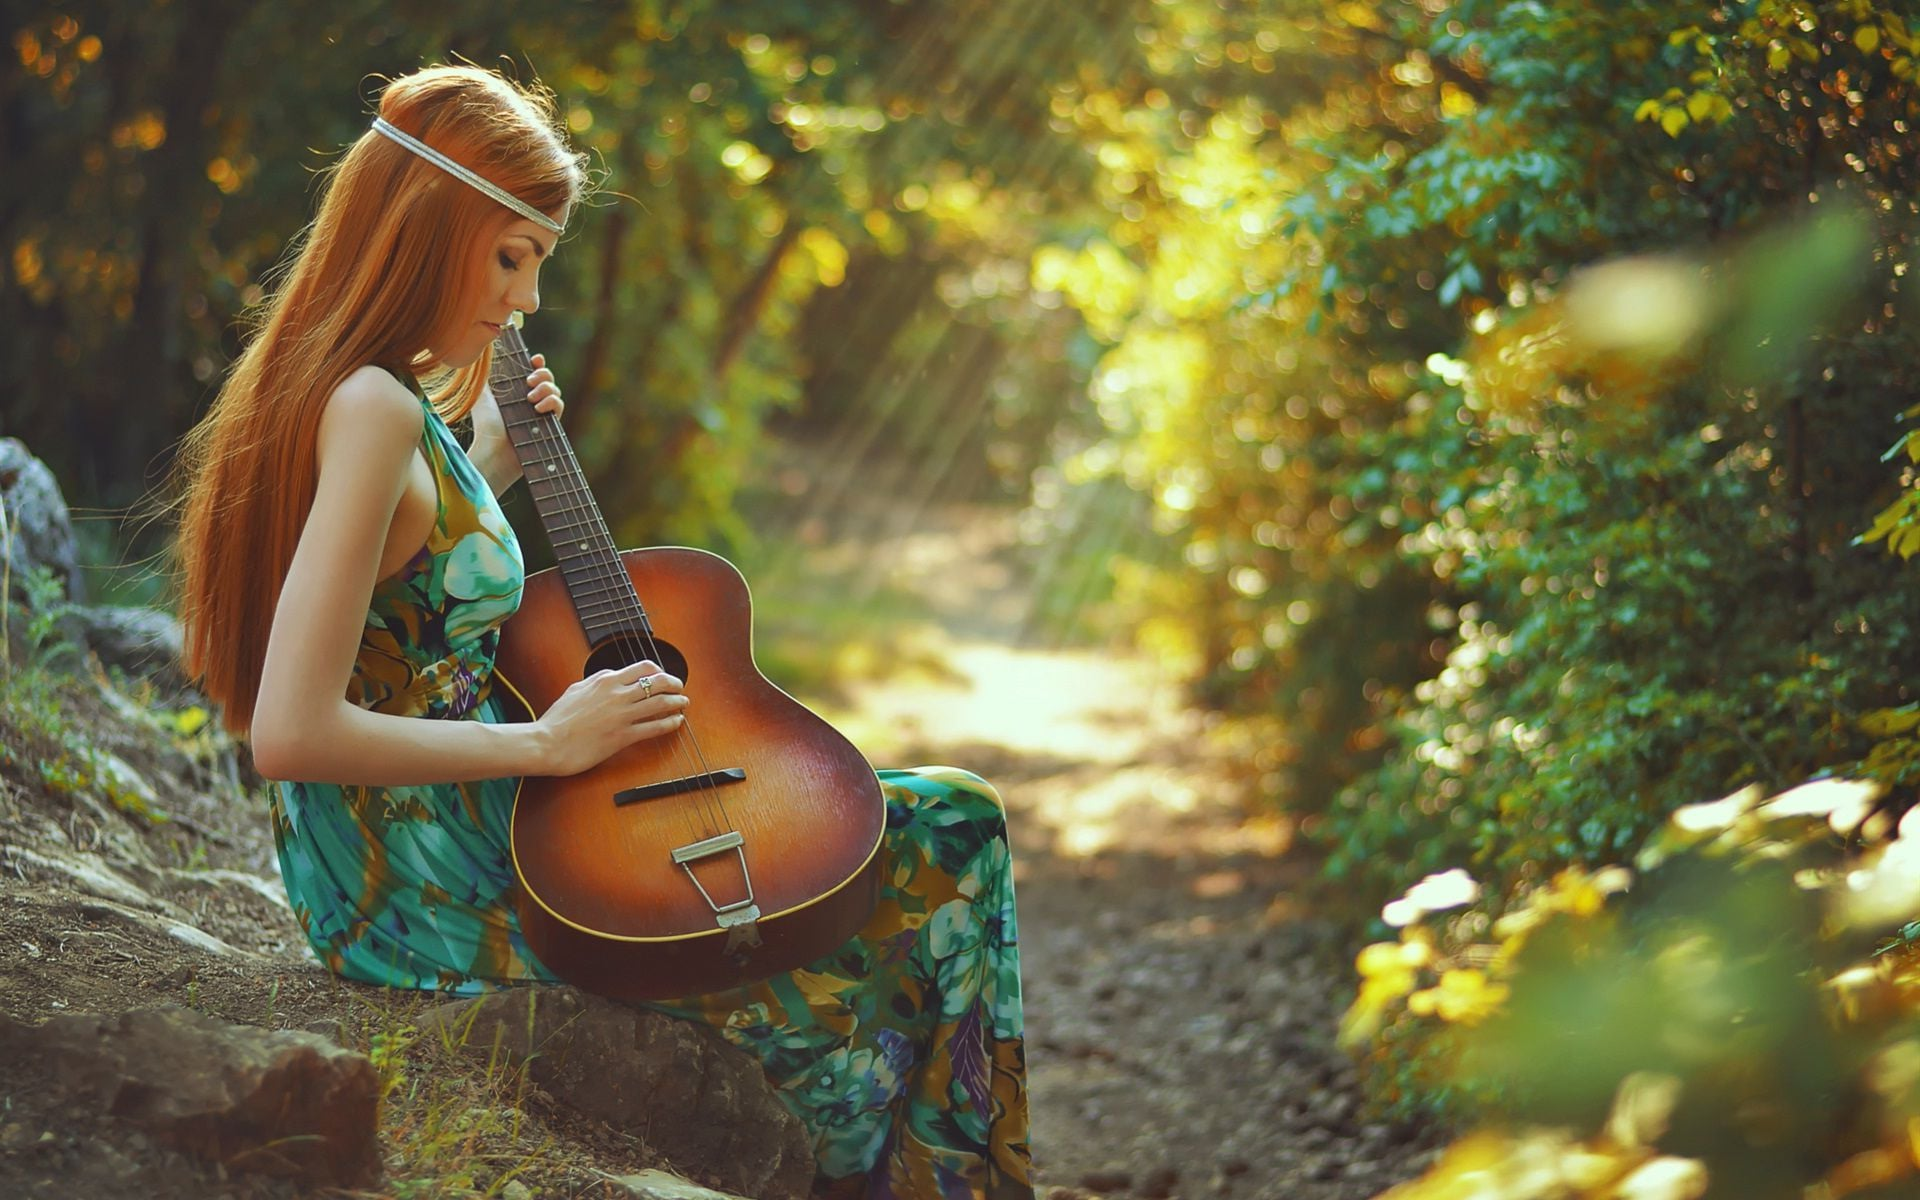 Baby Girl Hd Wallpaper Download Wallpapers Girl With Guitar Hd Download